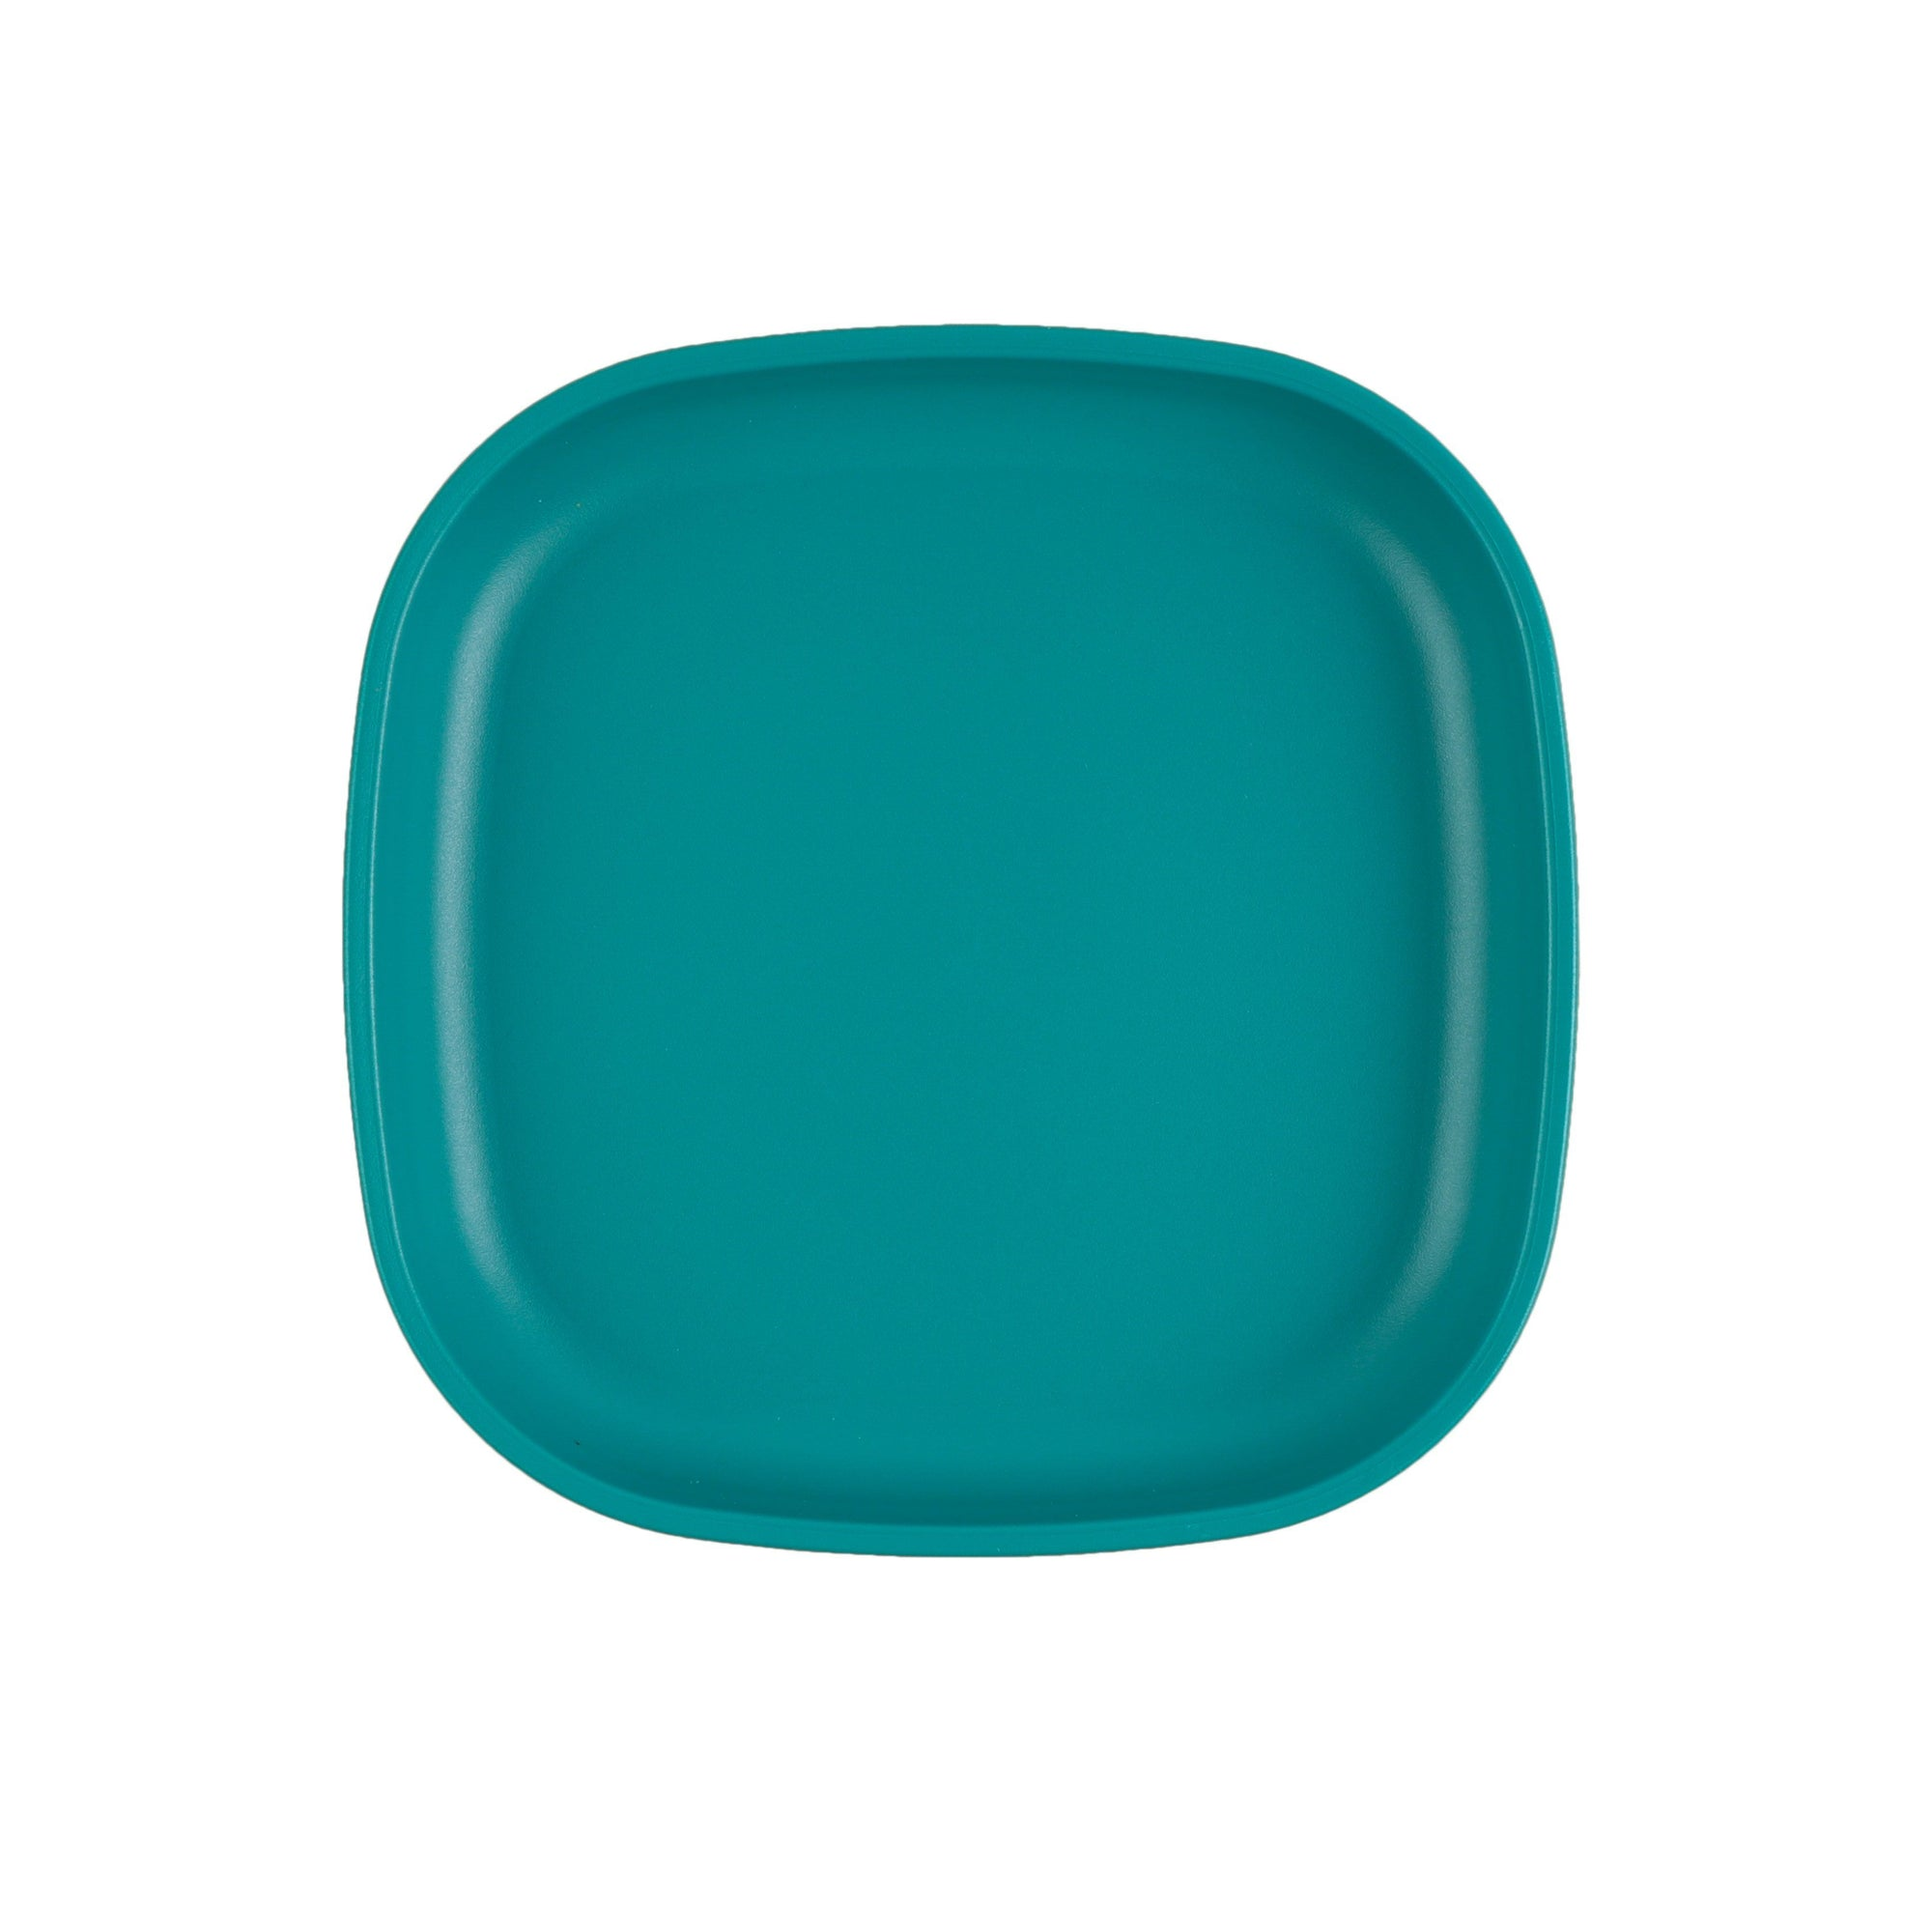 Large Flat Plate (Teal)